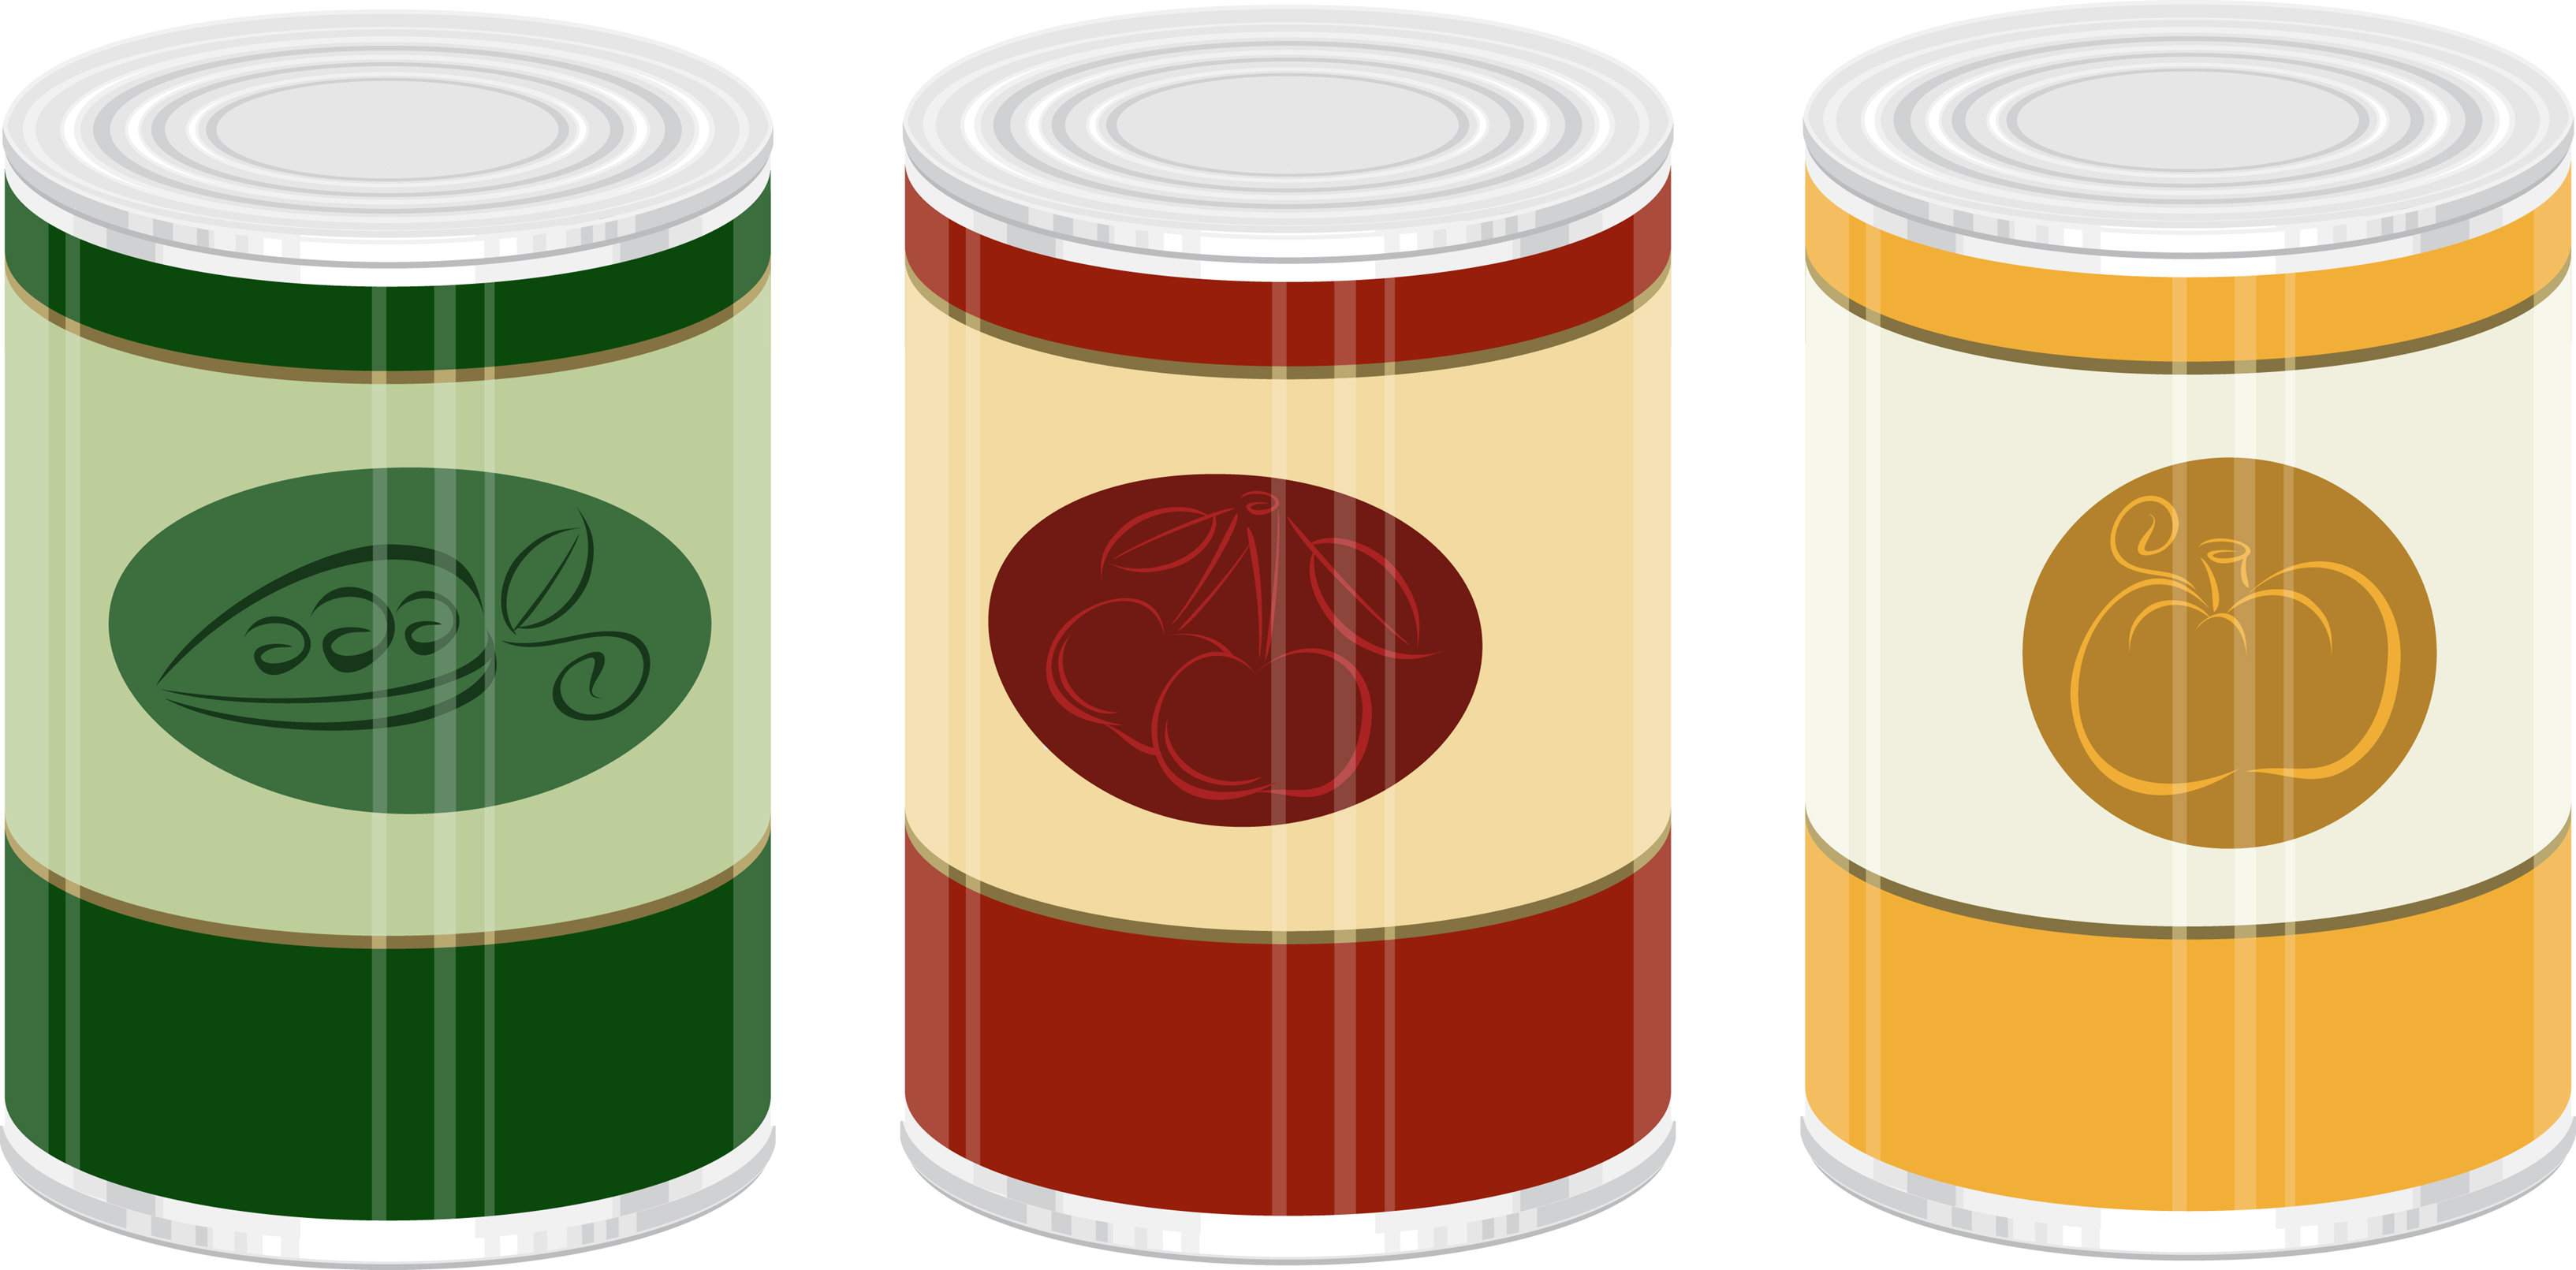 Food_Drive_2015.png